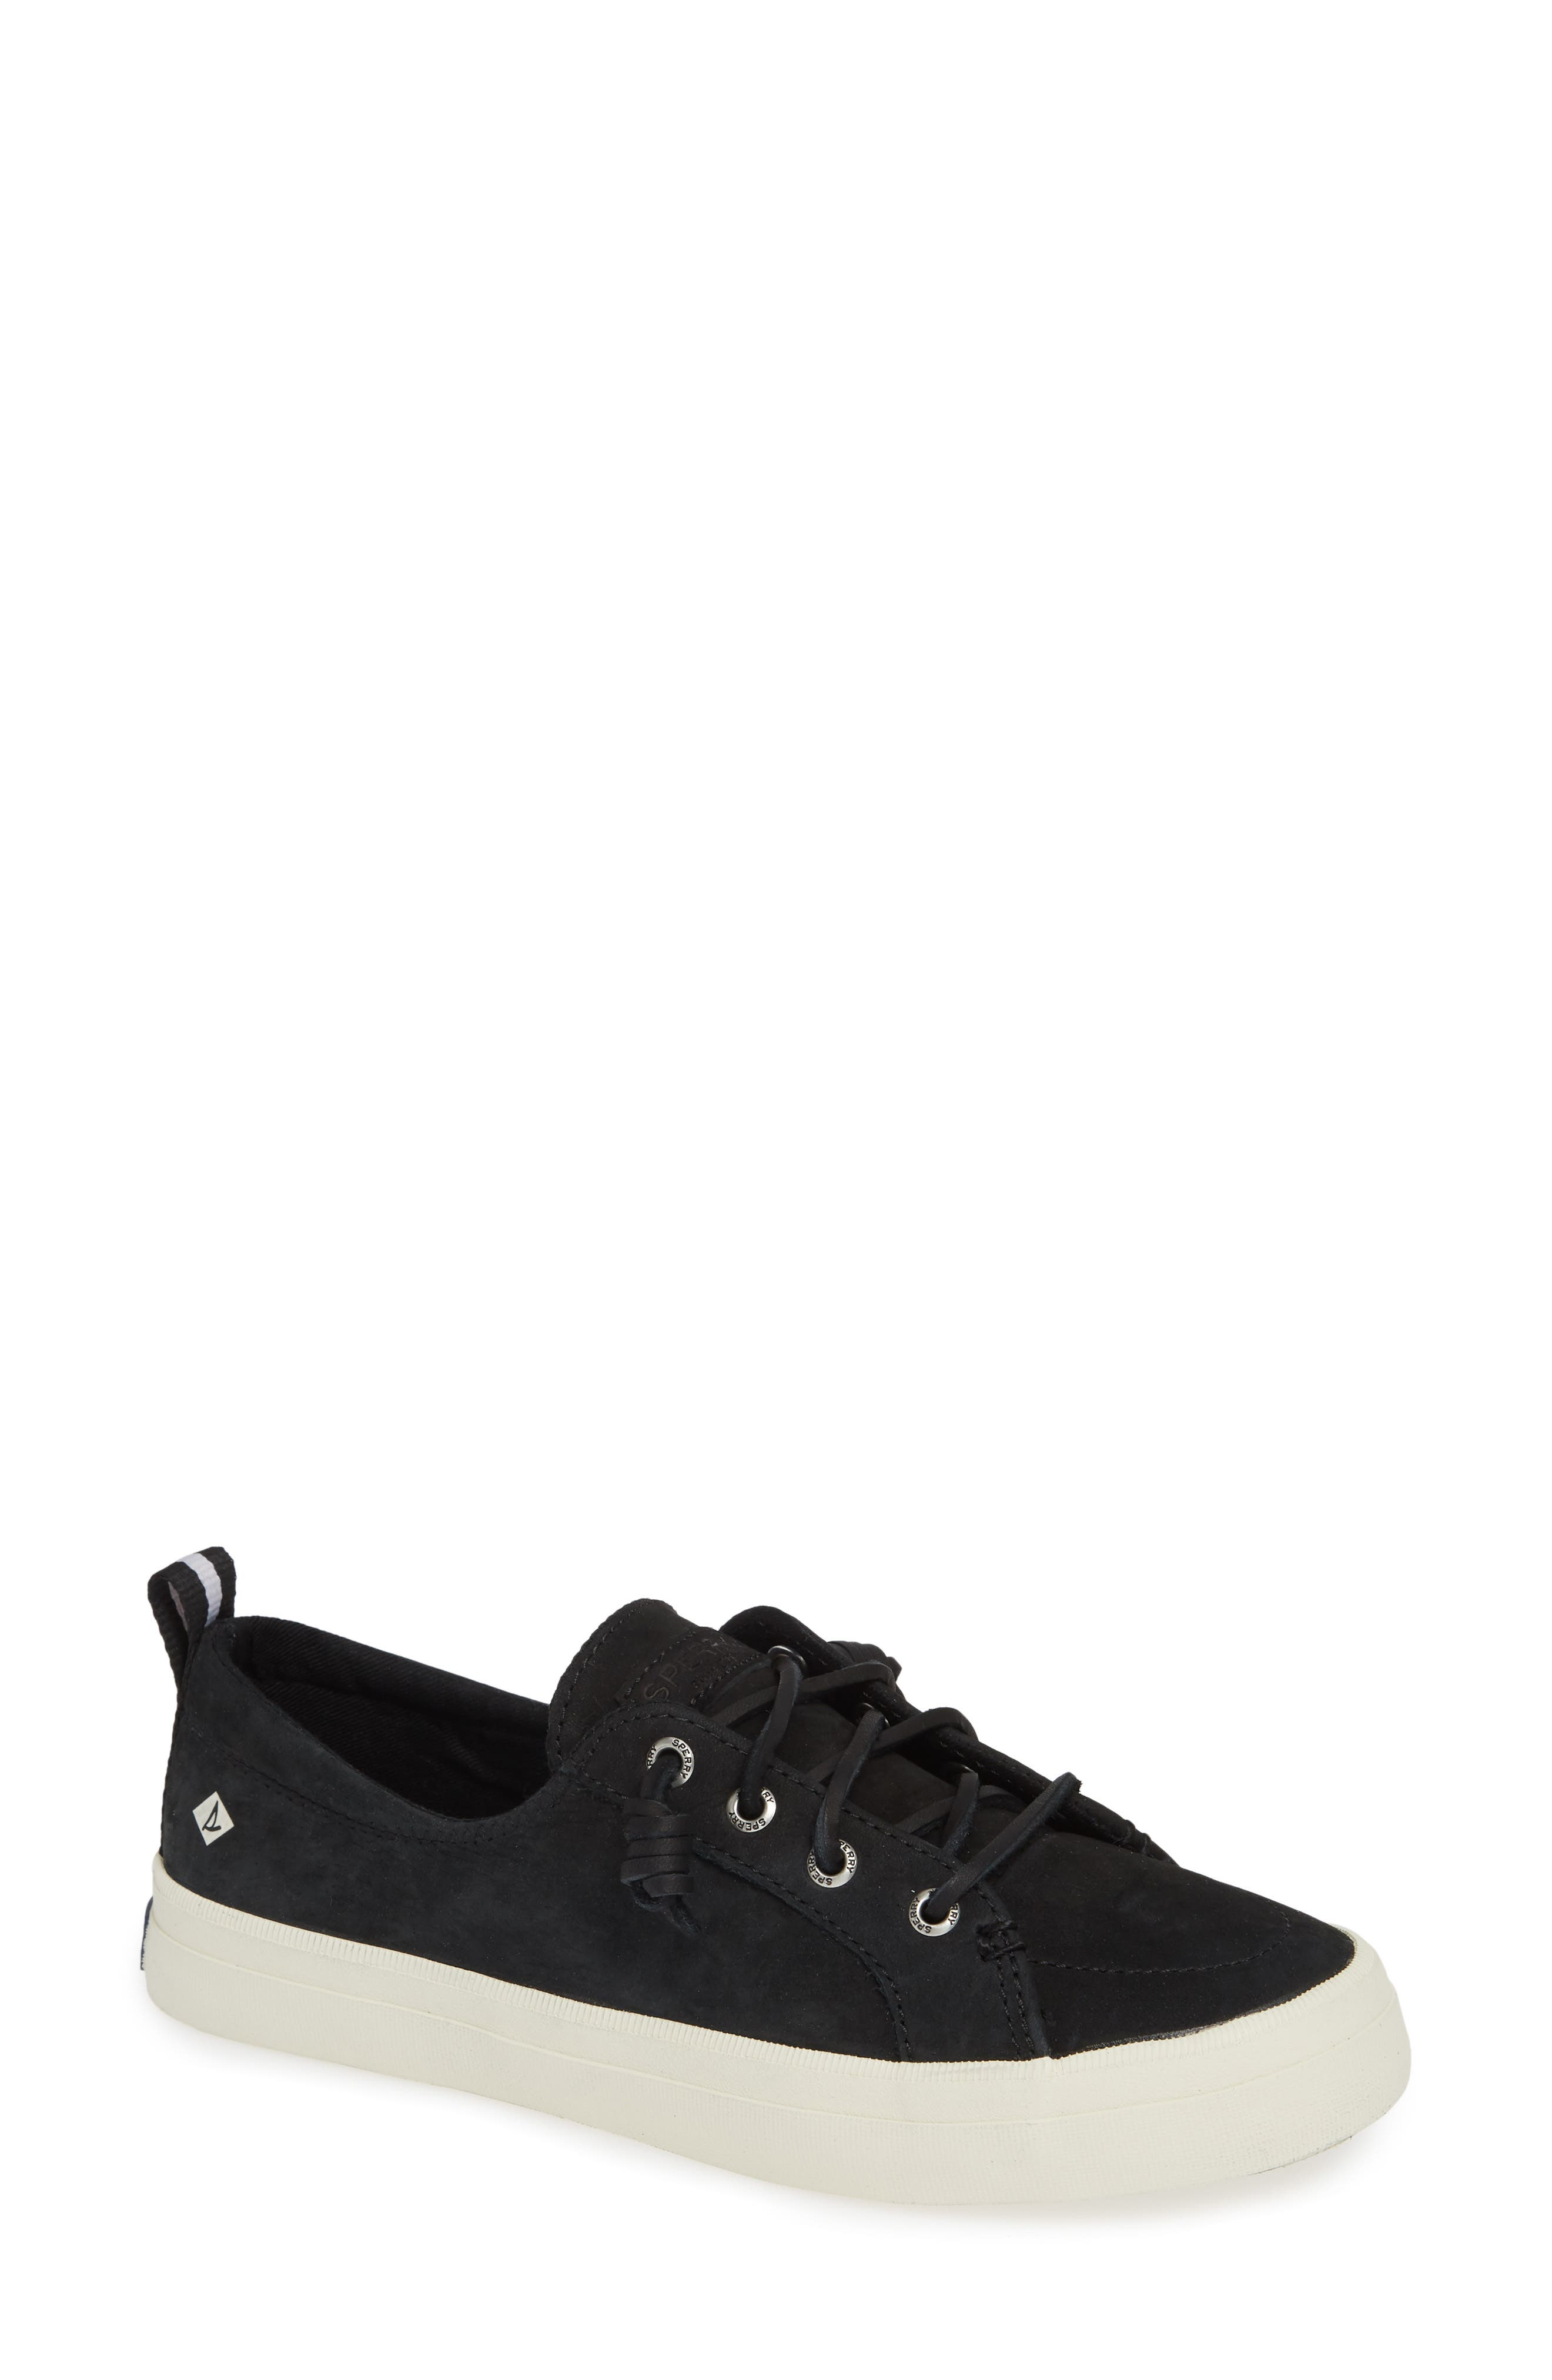 SPERRY,                             Crest Vibe Sneaker,                             Main thumbnail 1, color,                             001